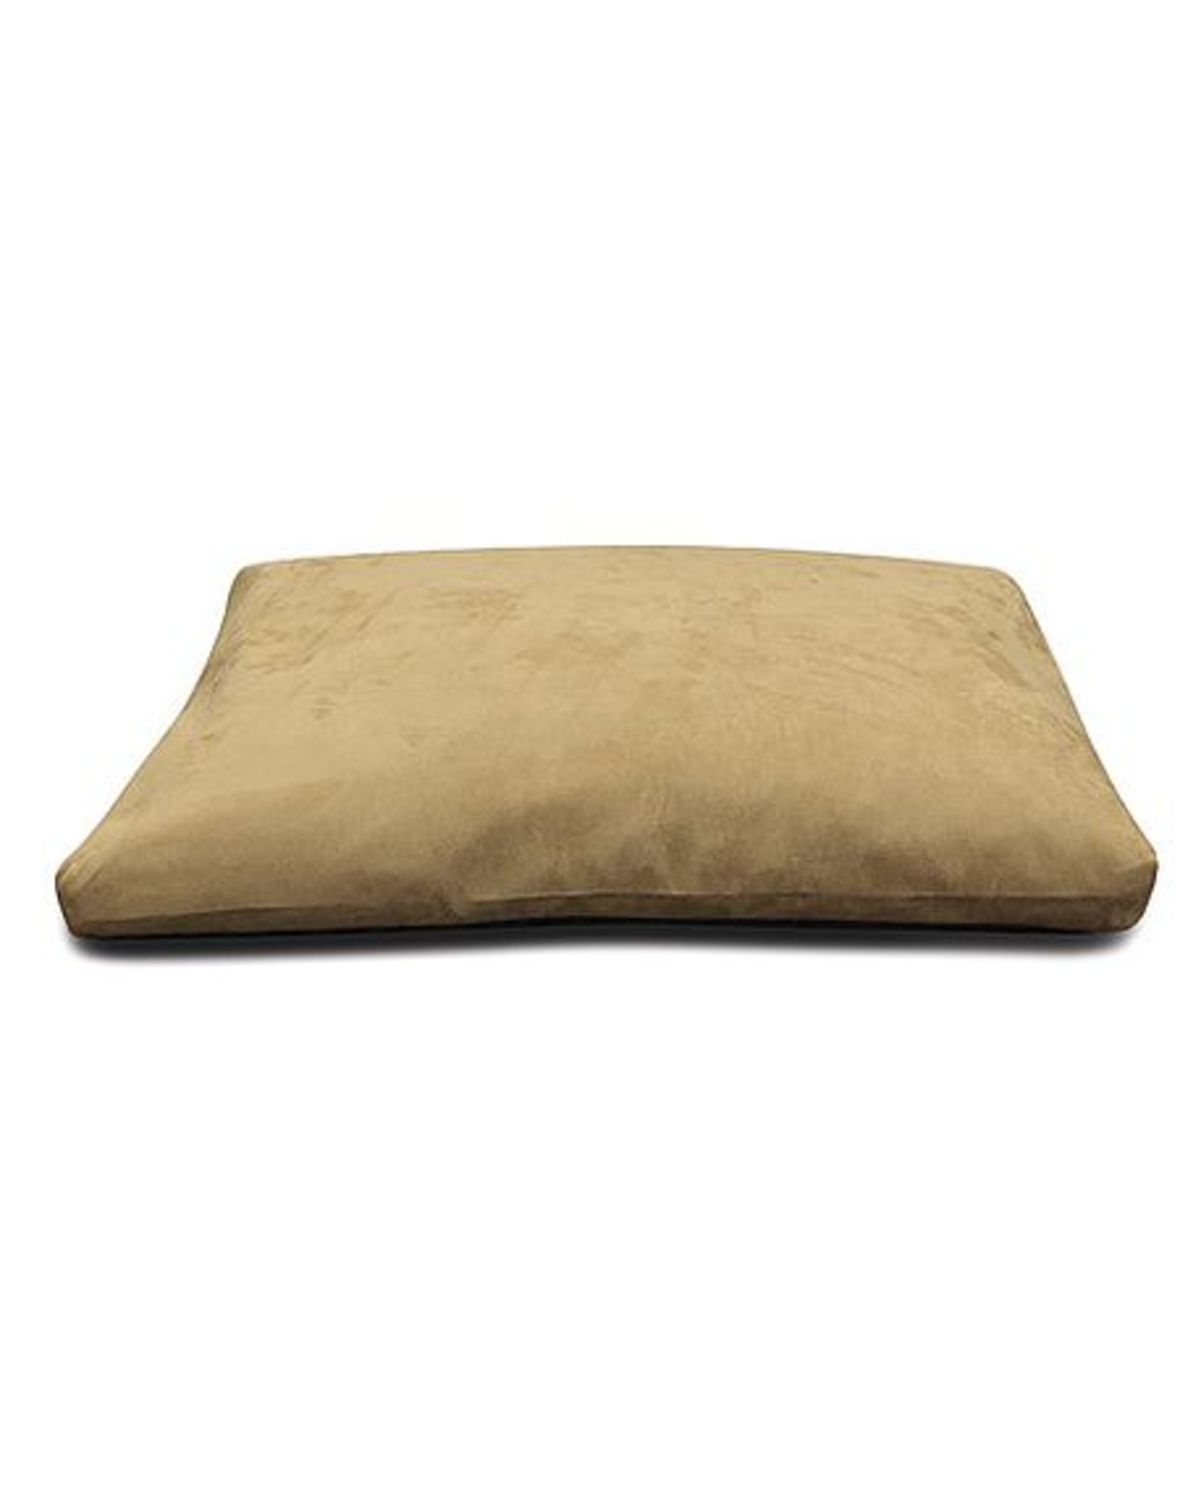 Dust Mite Dog Bed Cover